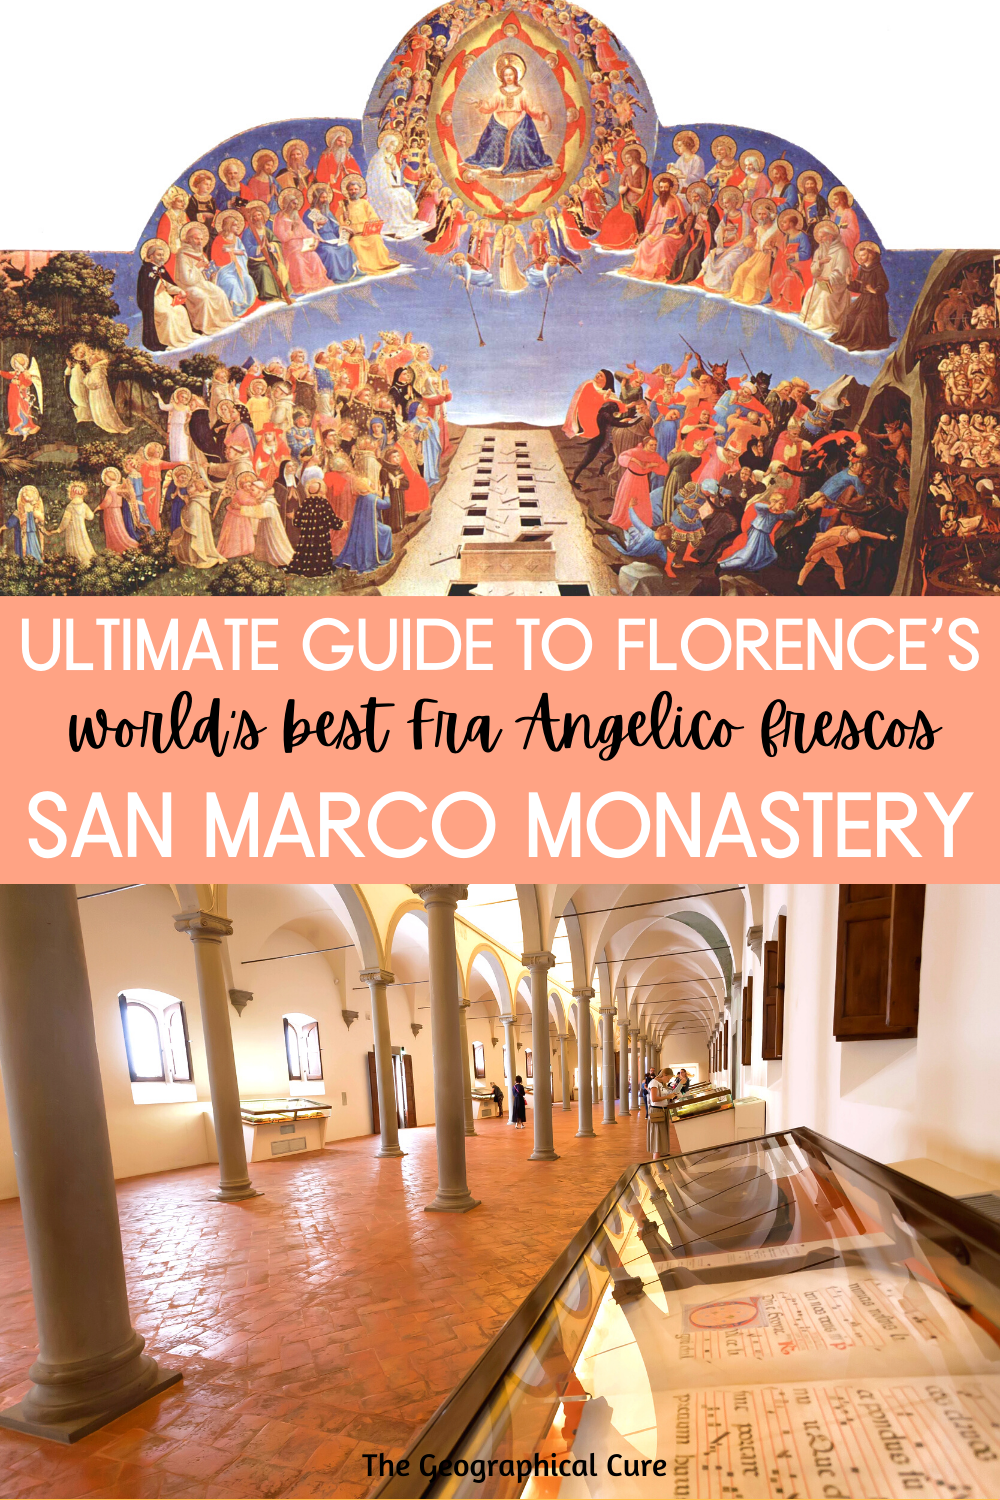 Visitor's Guide to Florence's San Marco Monastery, a Fra Angelico Dreamland